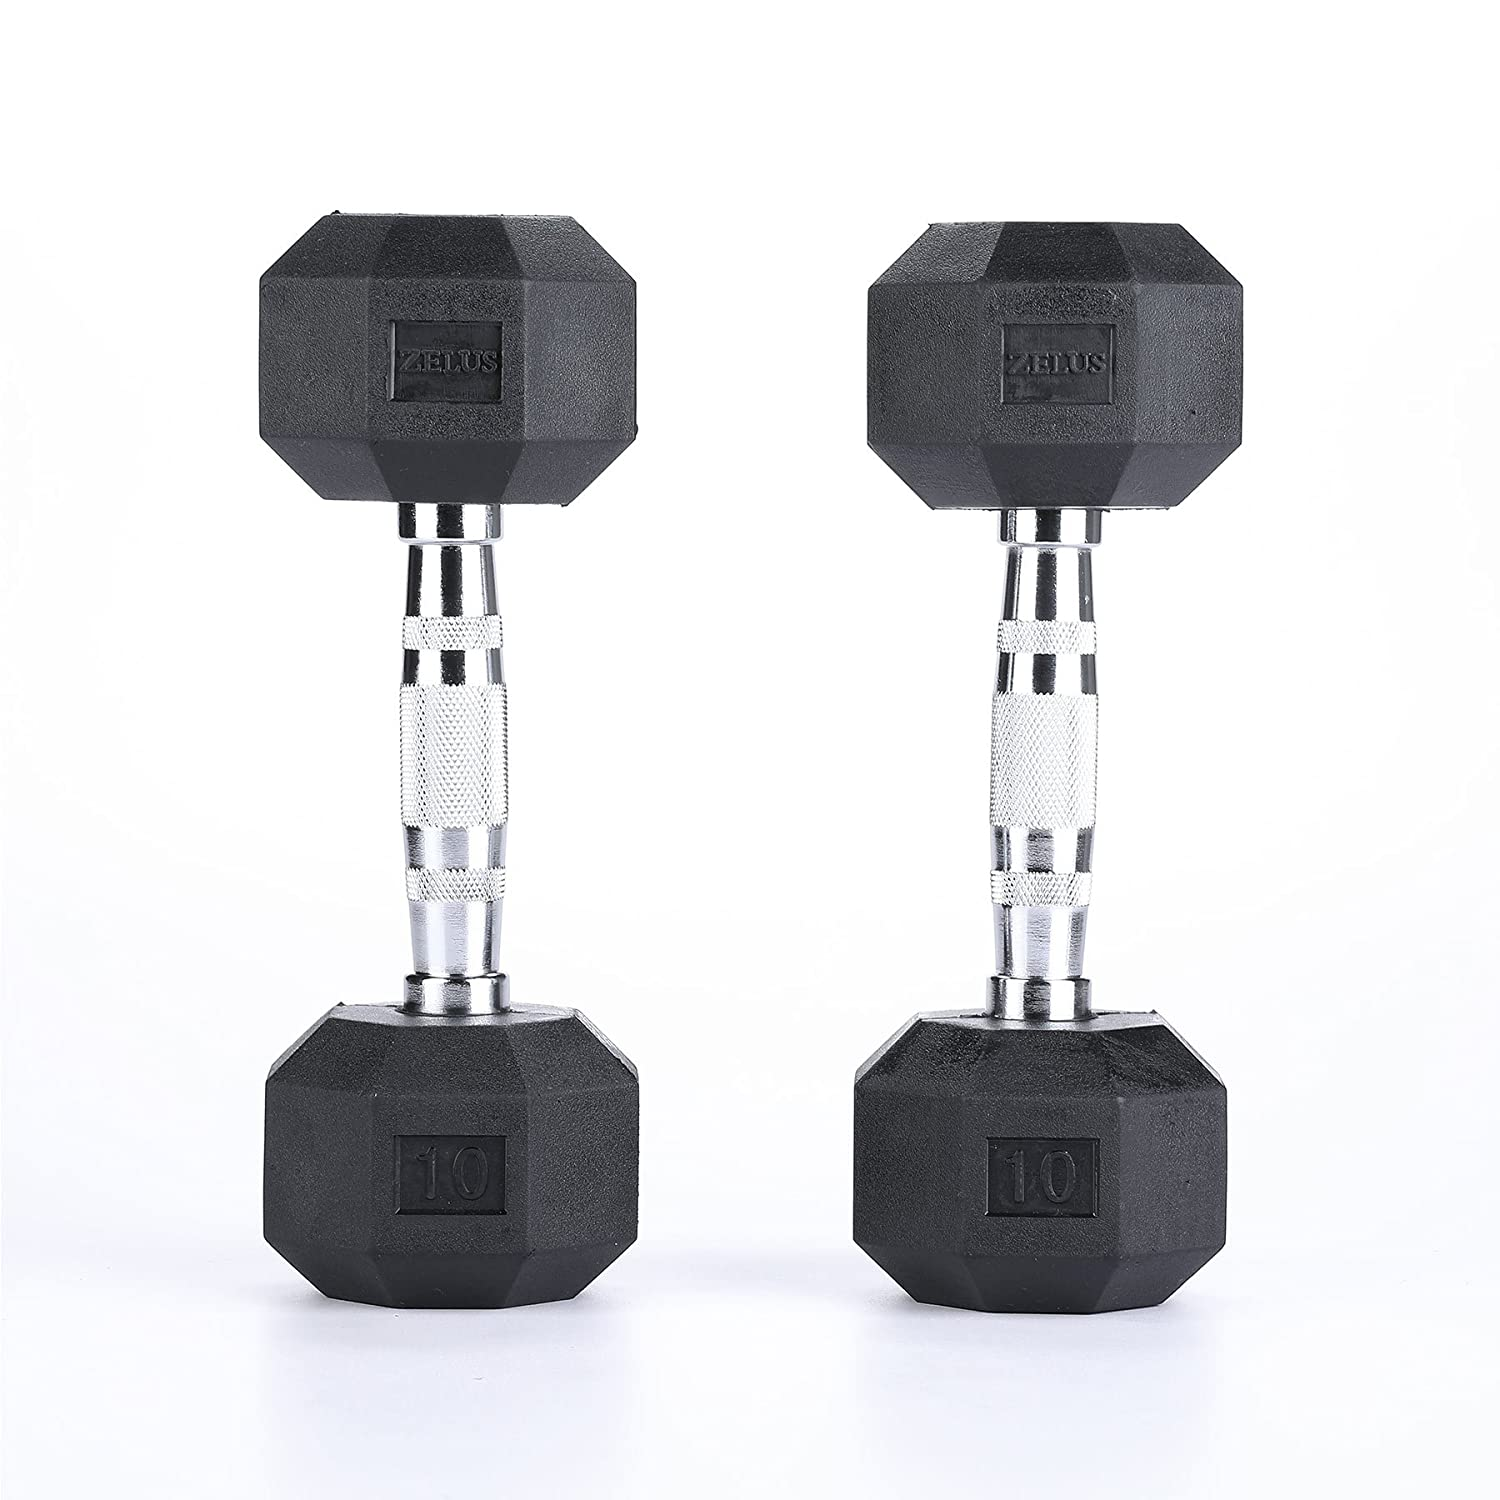 ZELUS Rubber Dumbbells Hand Weights Metal Handles Dumbbells Weights 3 5 8 10 12 15 20 25 30 35 40 45 50LBS Available